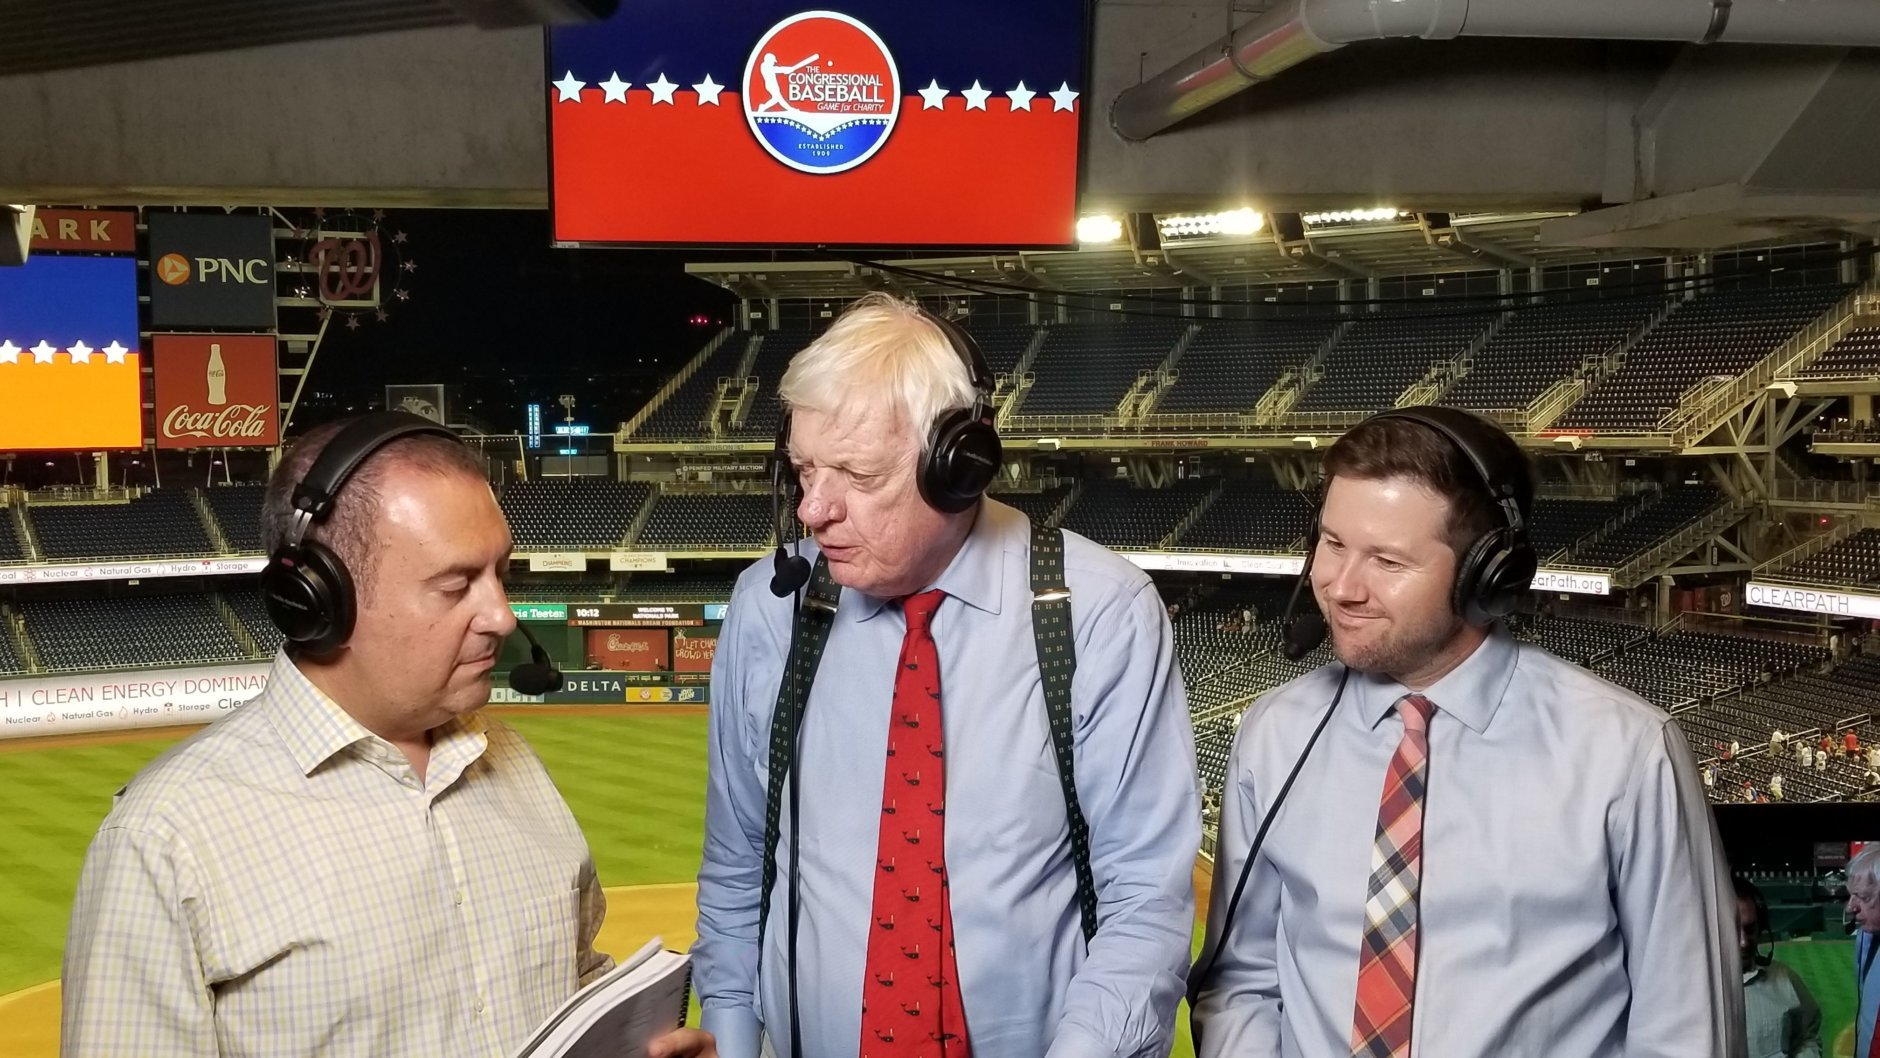 WTOP's George Wallace, Dave McConnell and Noah Frank call the Congressional Baseball Game on Thursday, June 14, 2018. (WTOP/Albert Shimabukuro)